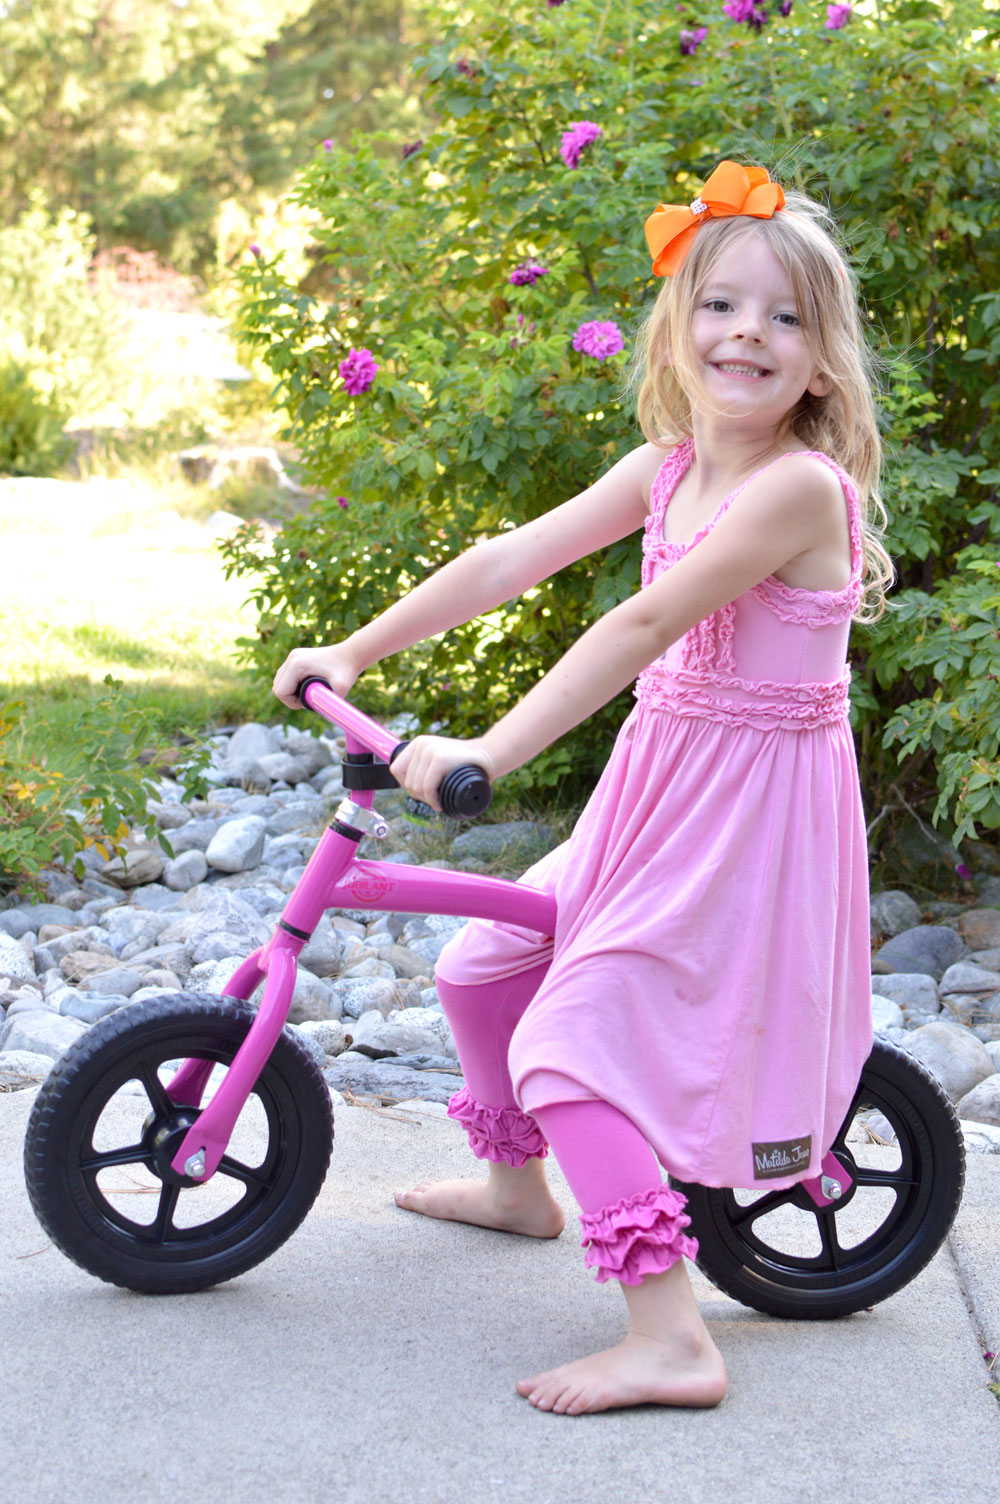 Jubilant Balance Bikes for kids - Mommy Scene